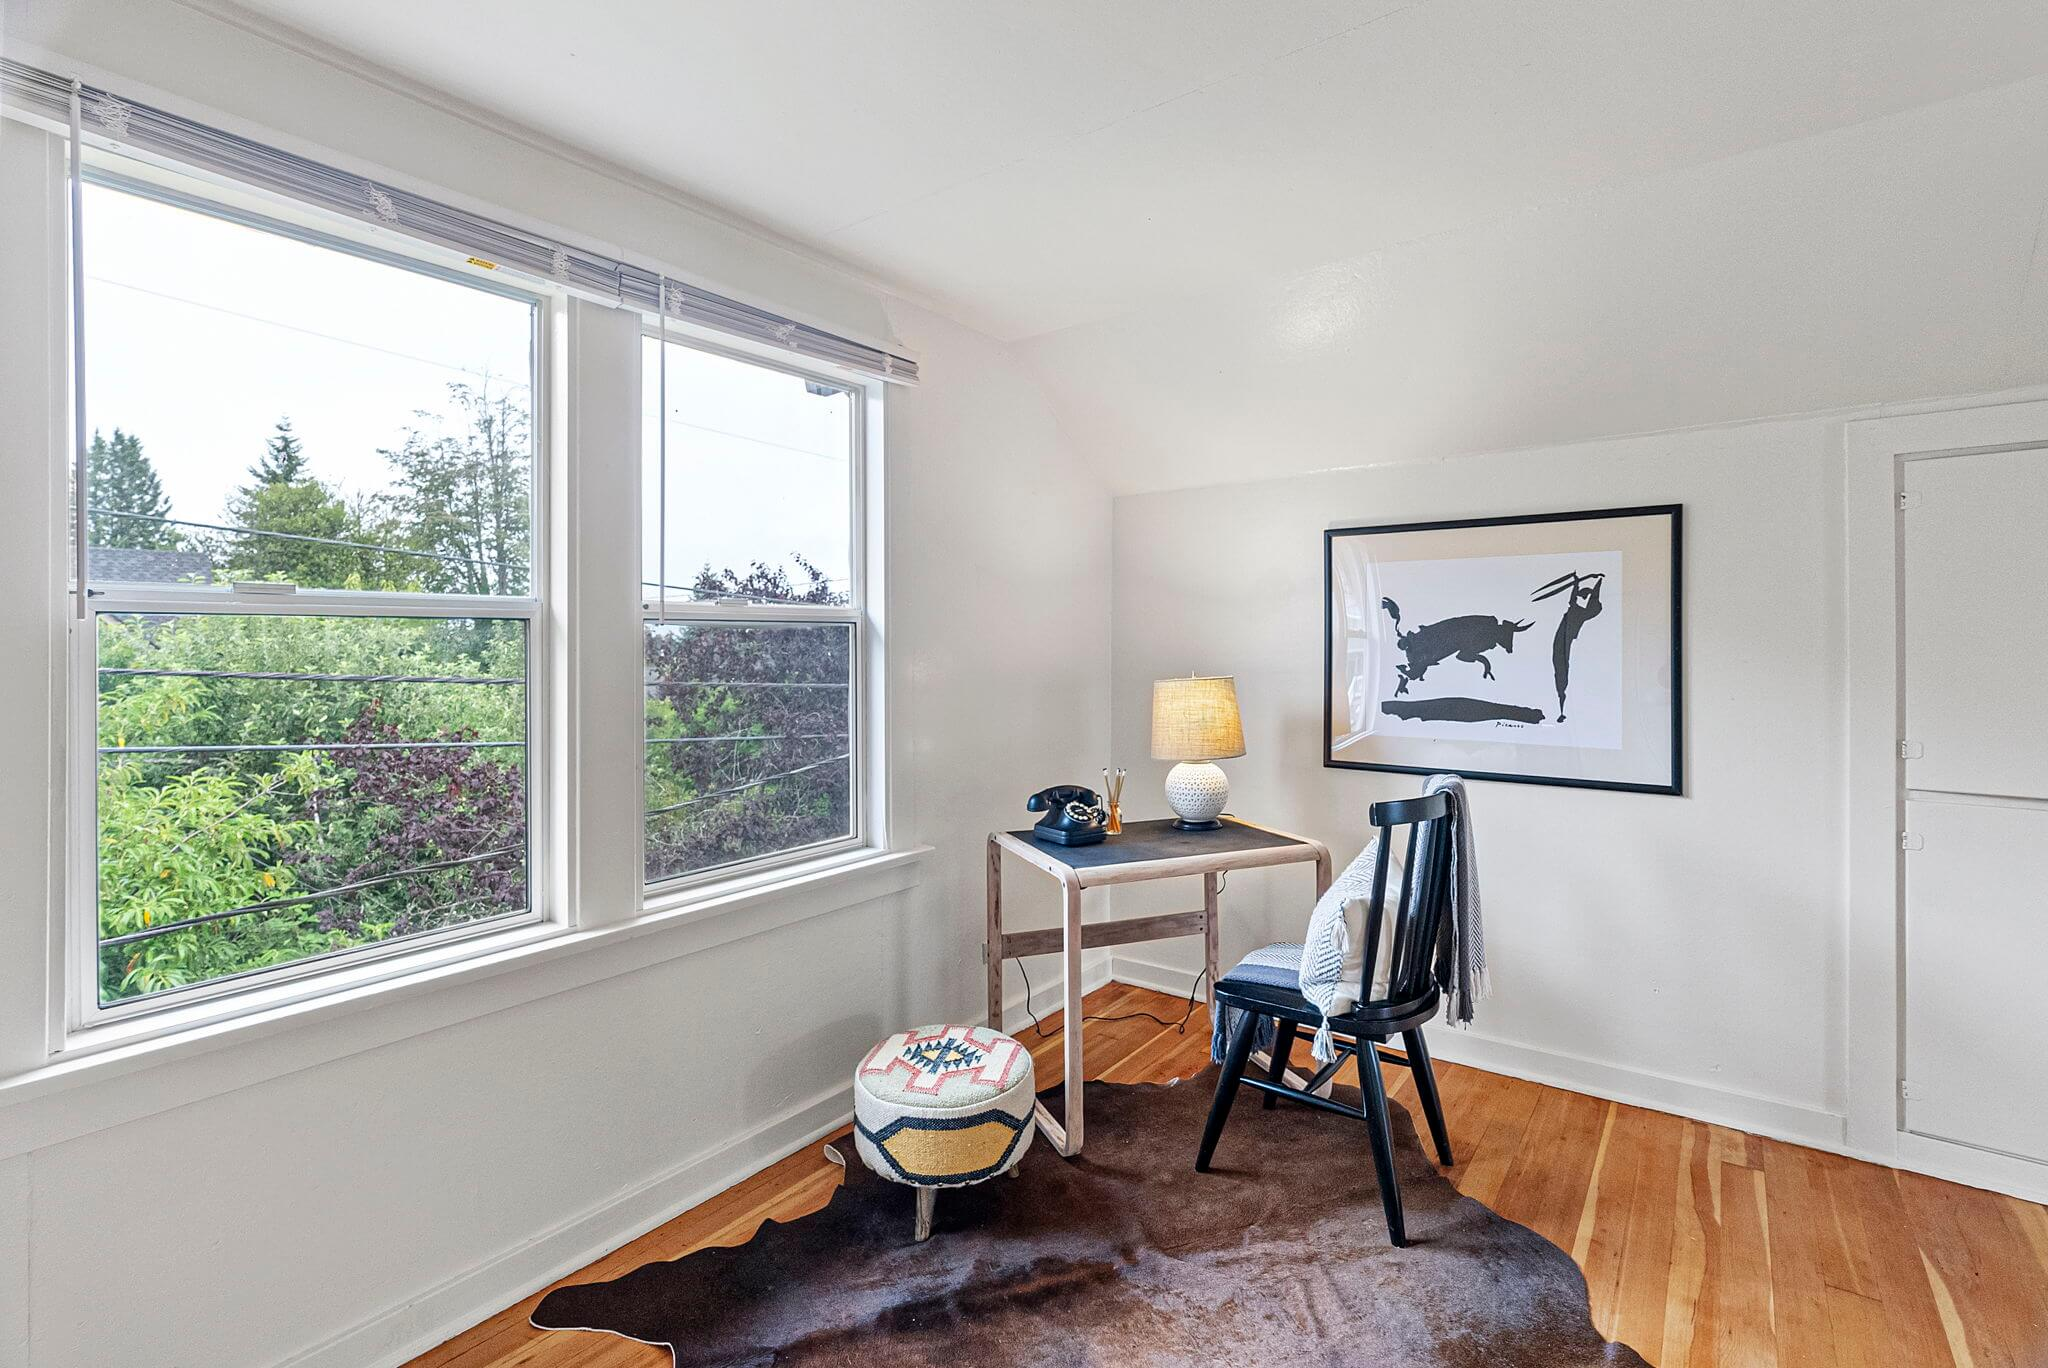 Plenty of space for a home office on the upstairs landing